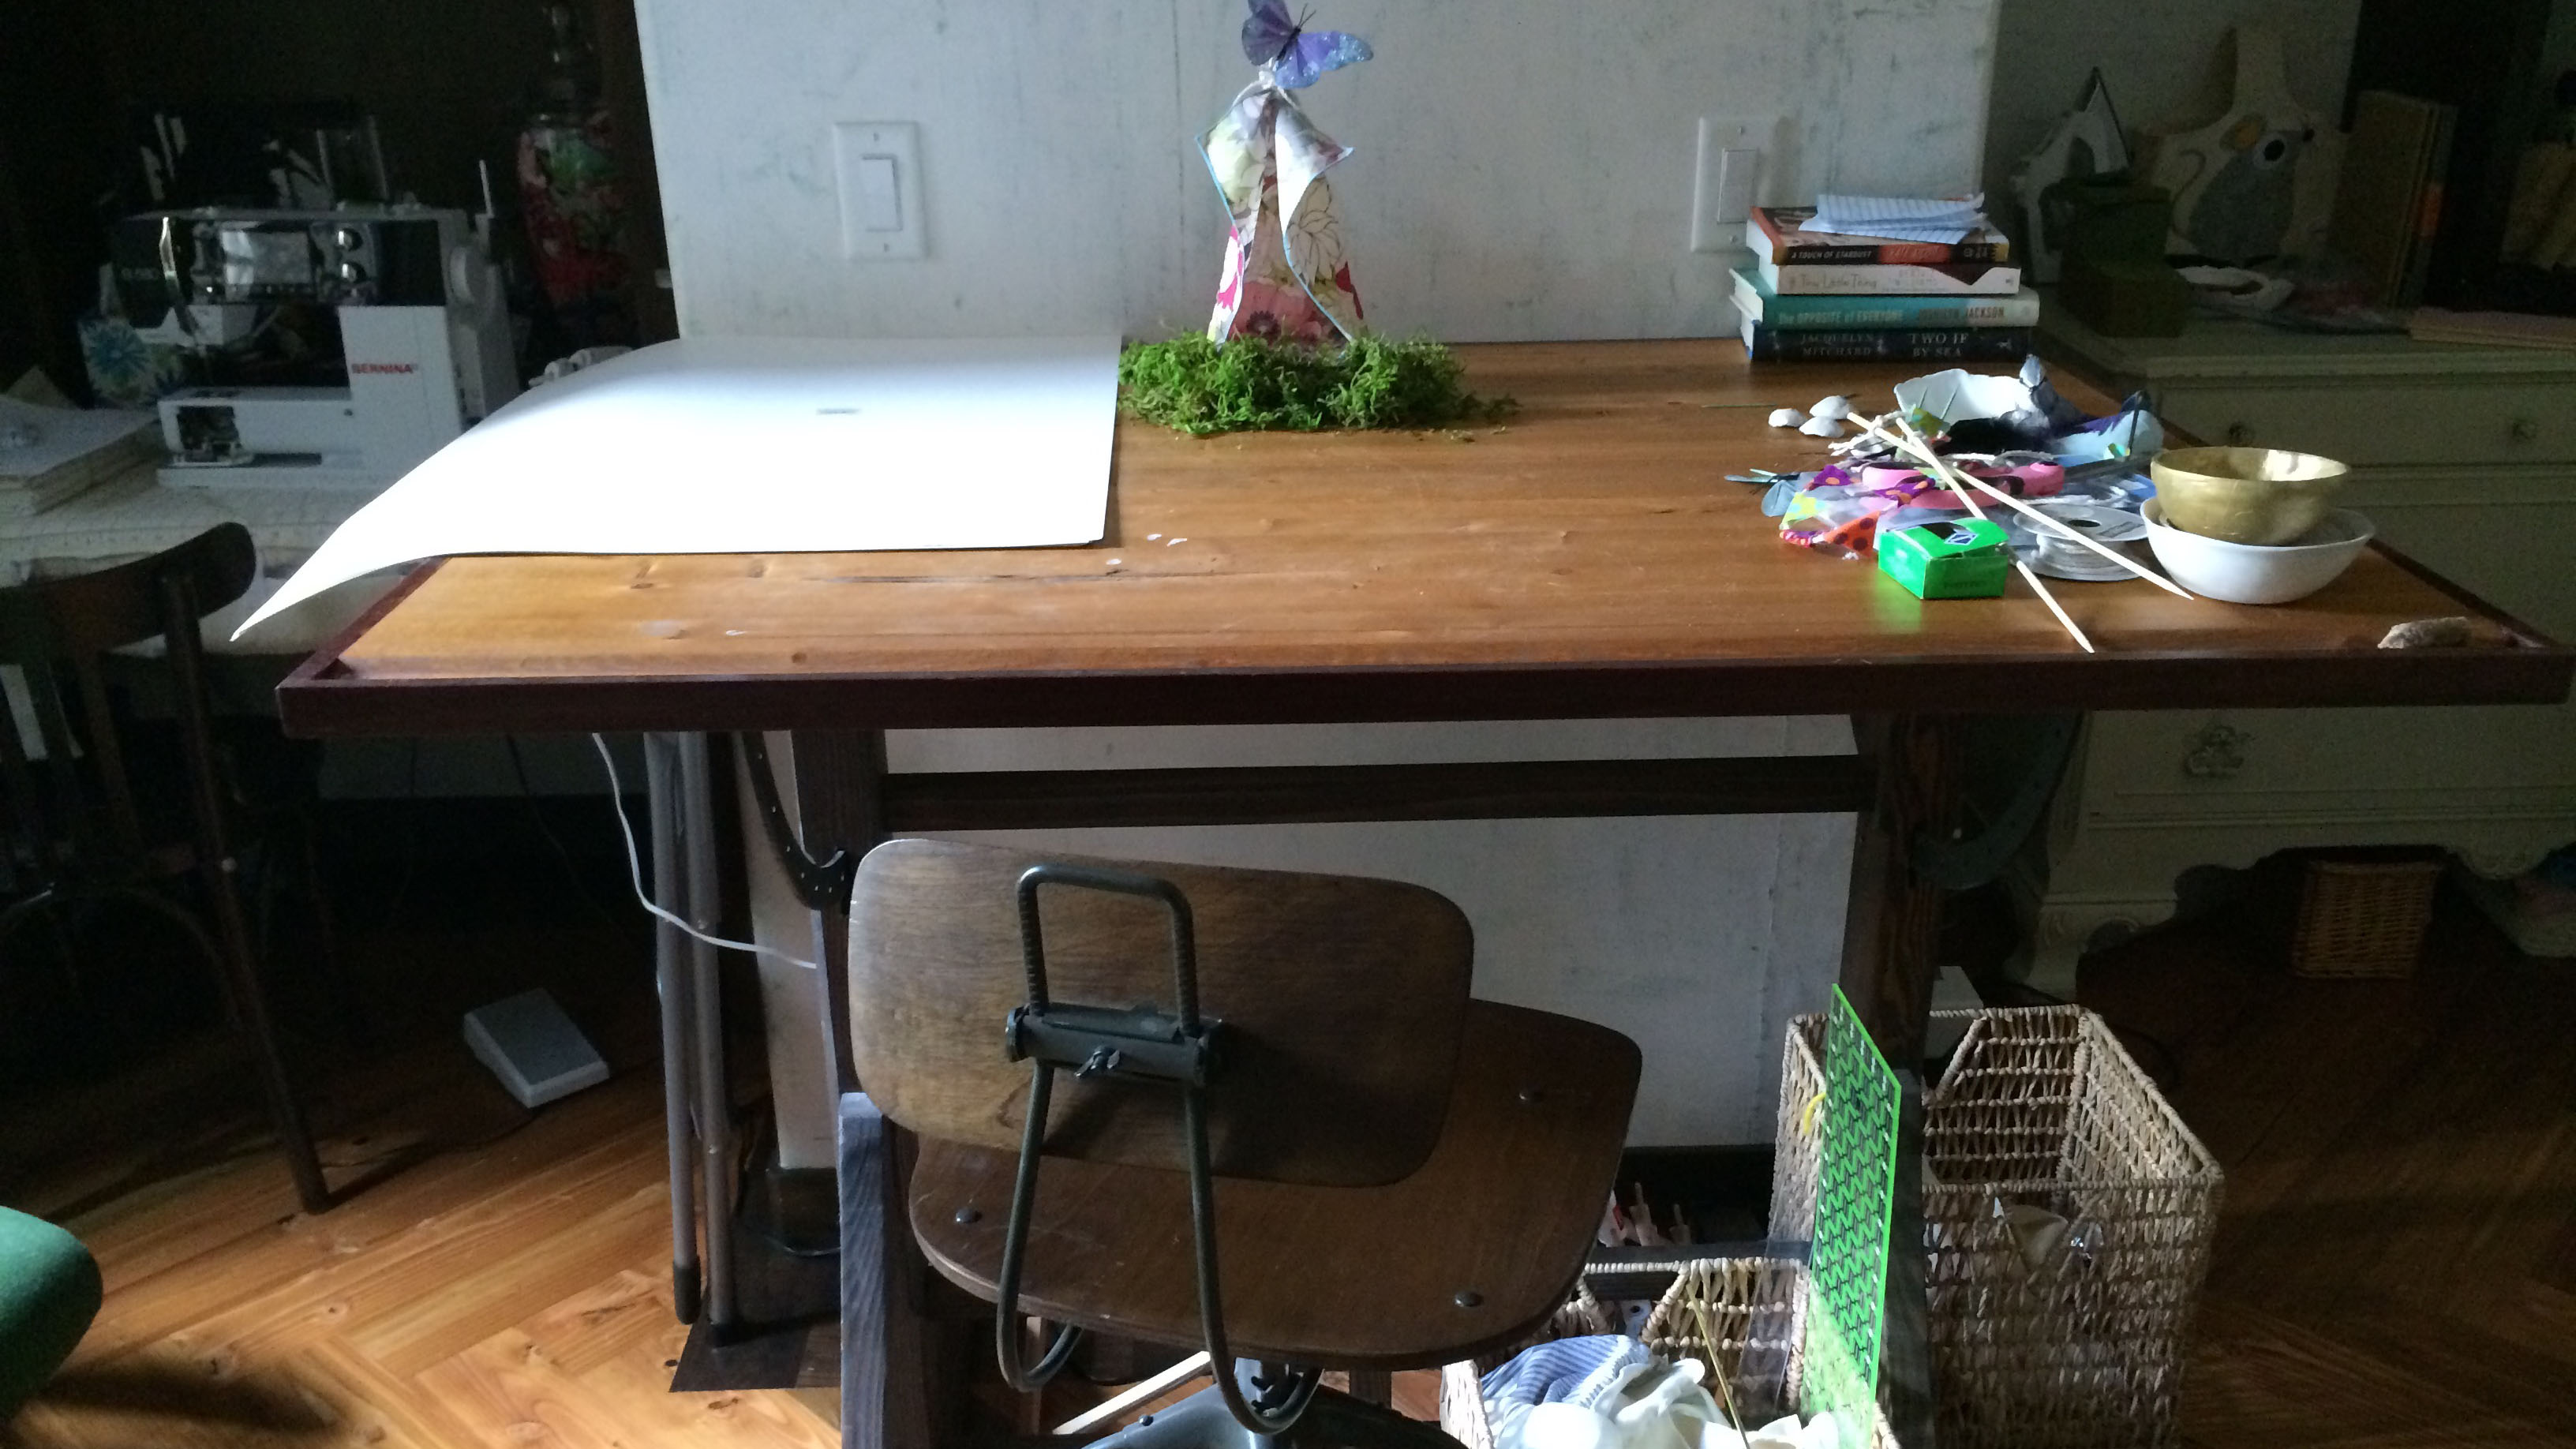 I already had the perfect sewing table. I just needed to put it in the right spot.